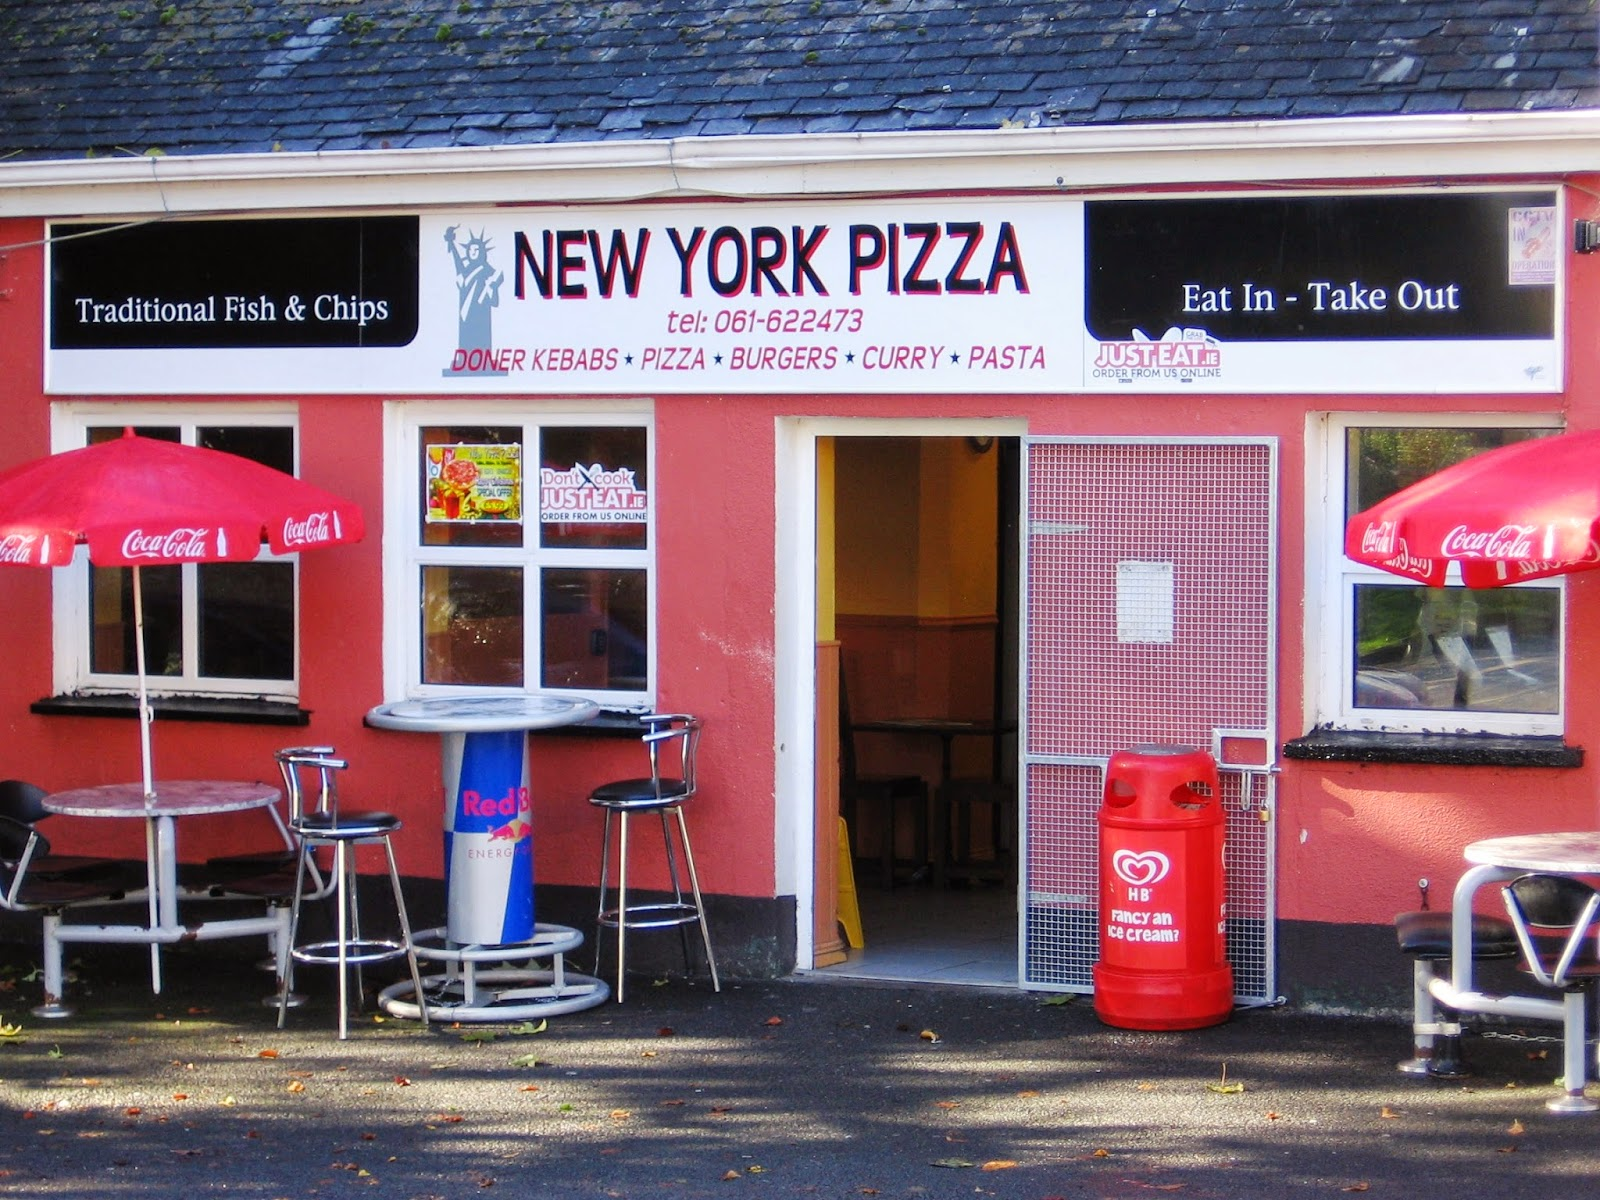 small village in Ireland sells New York style pizza